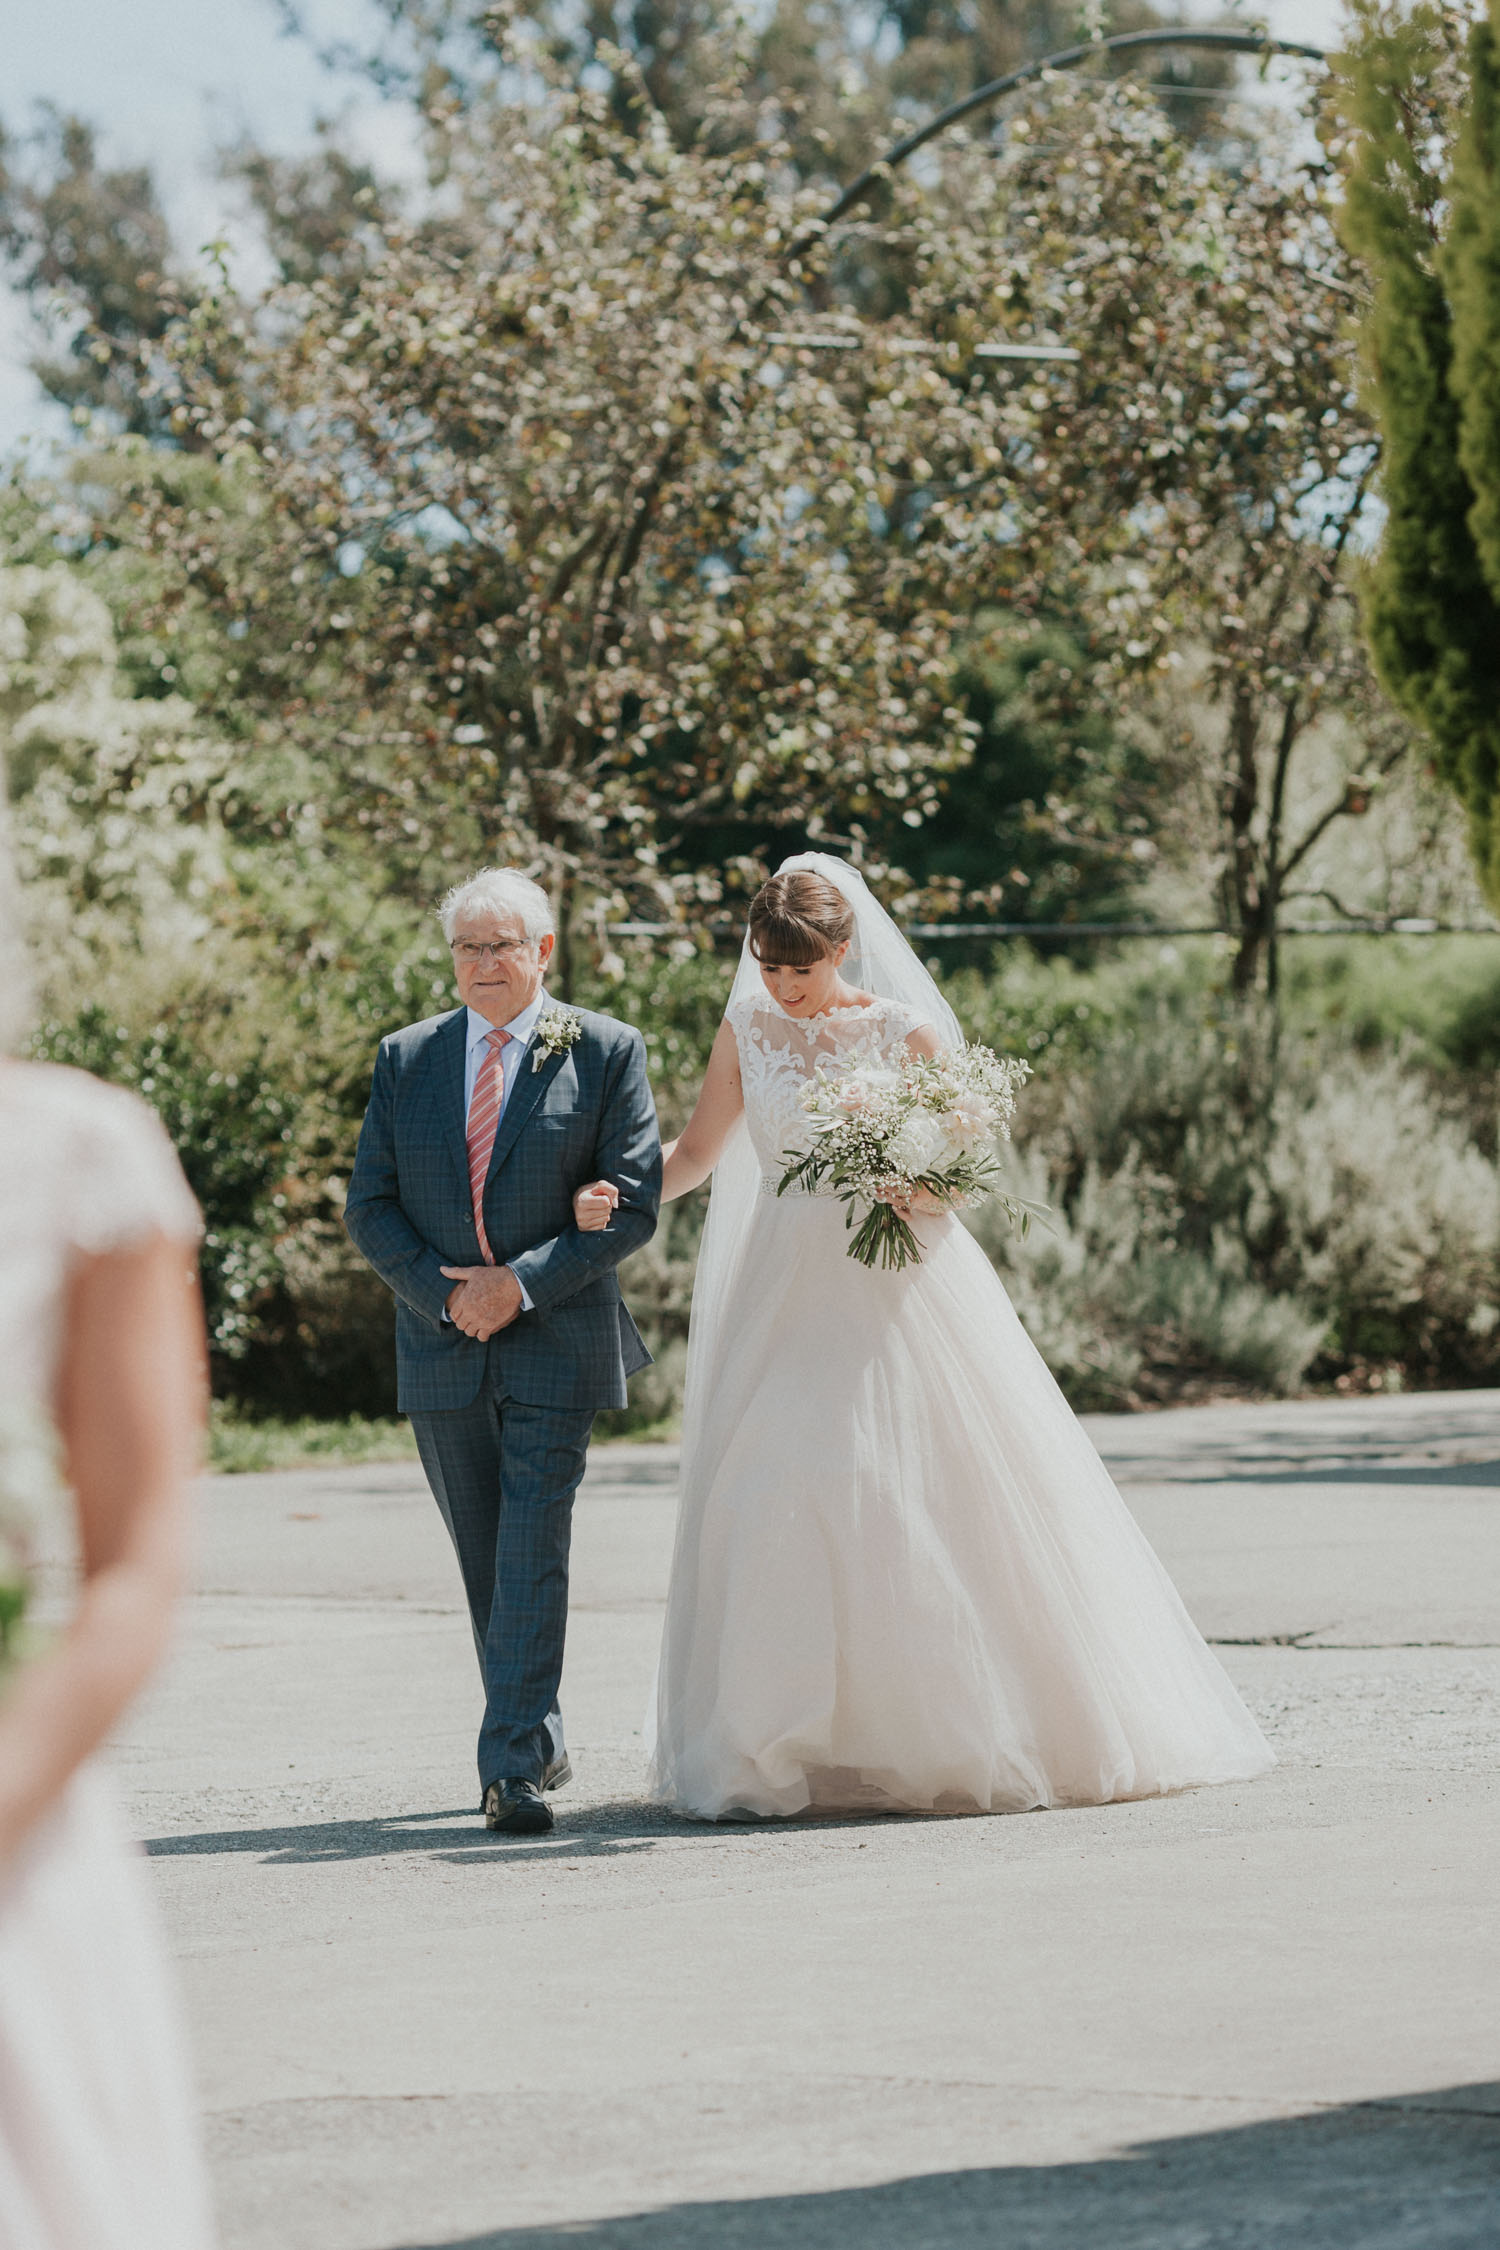 Father walking his daughter to the wedding ceremony